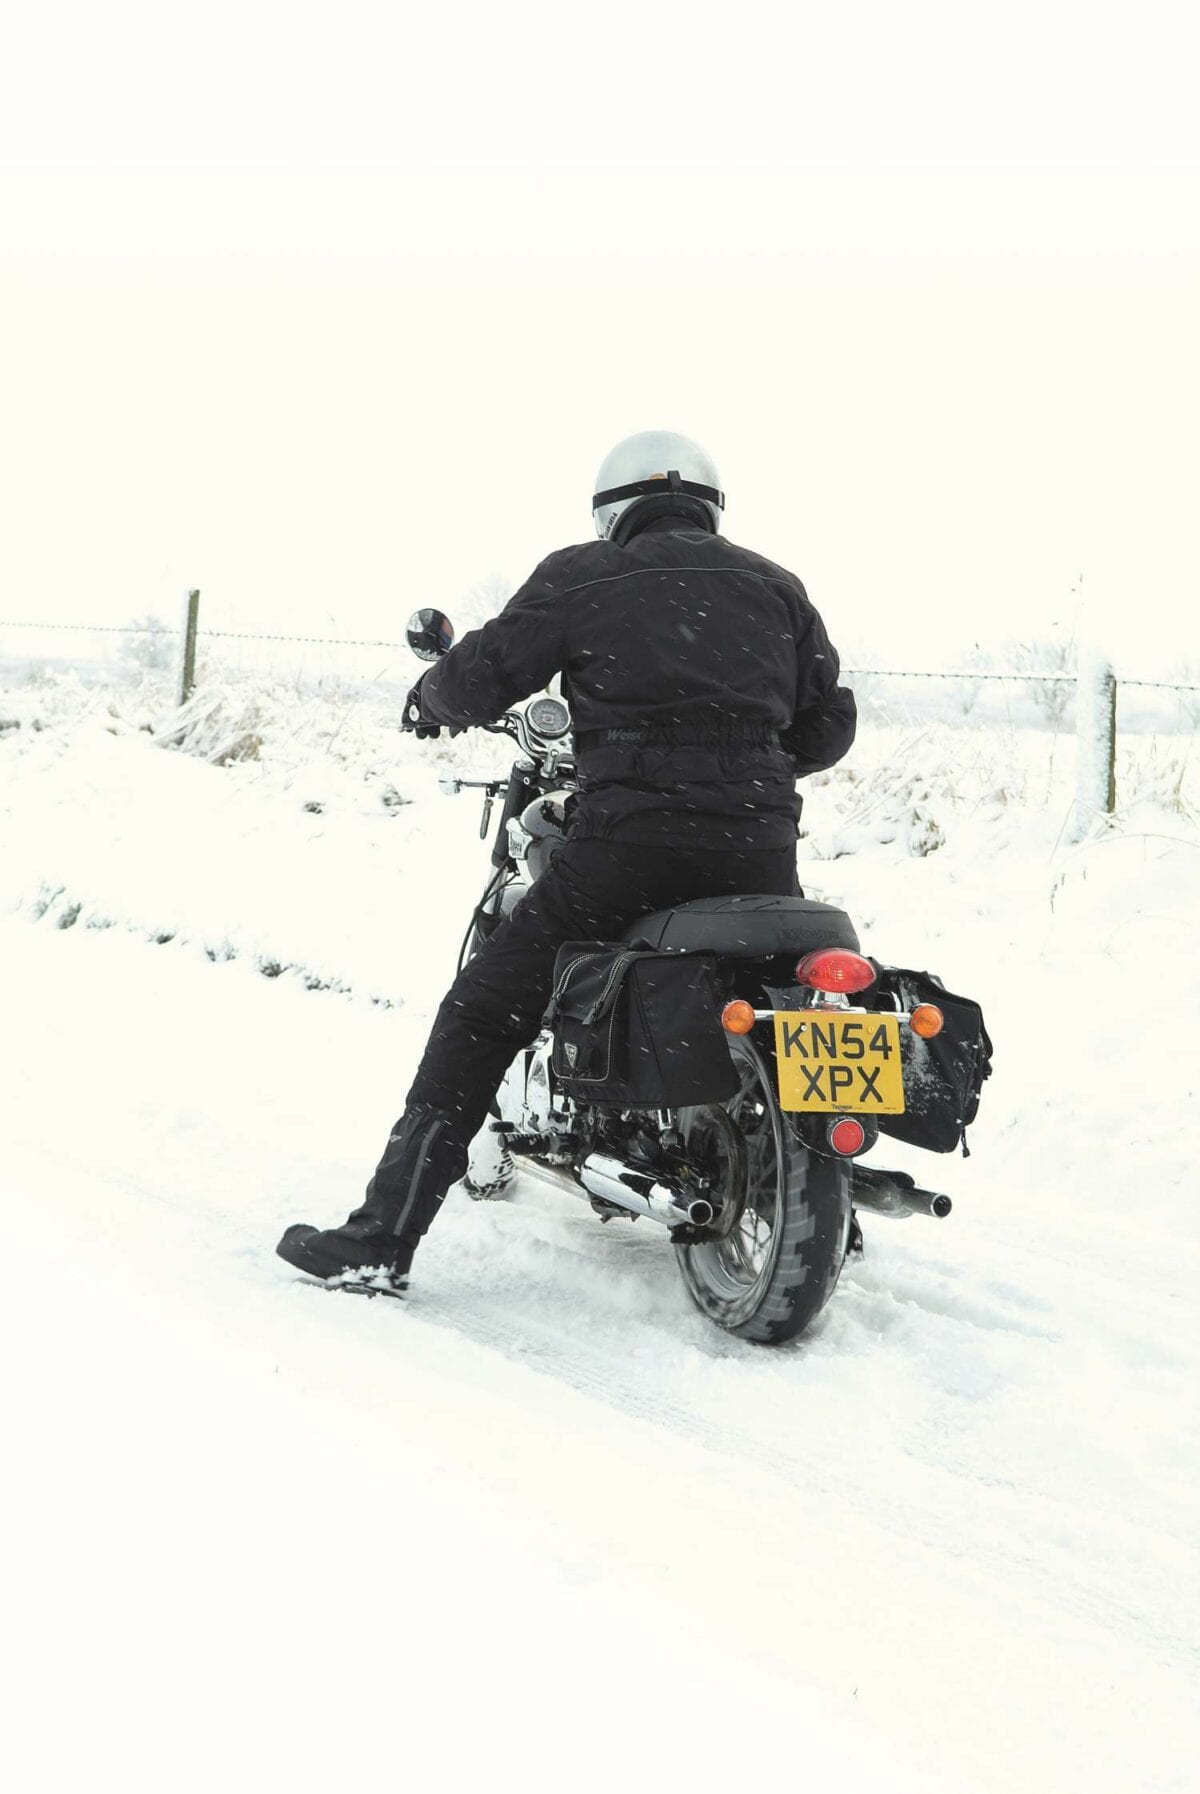 riding in snow